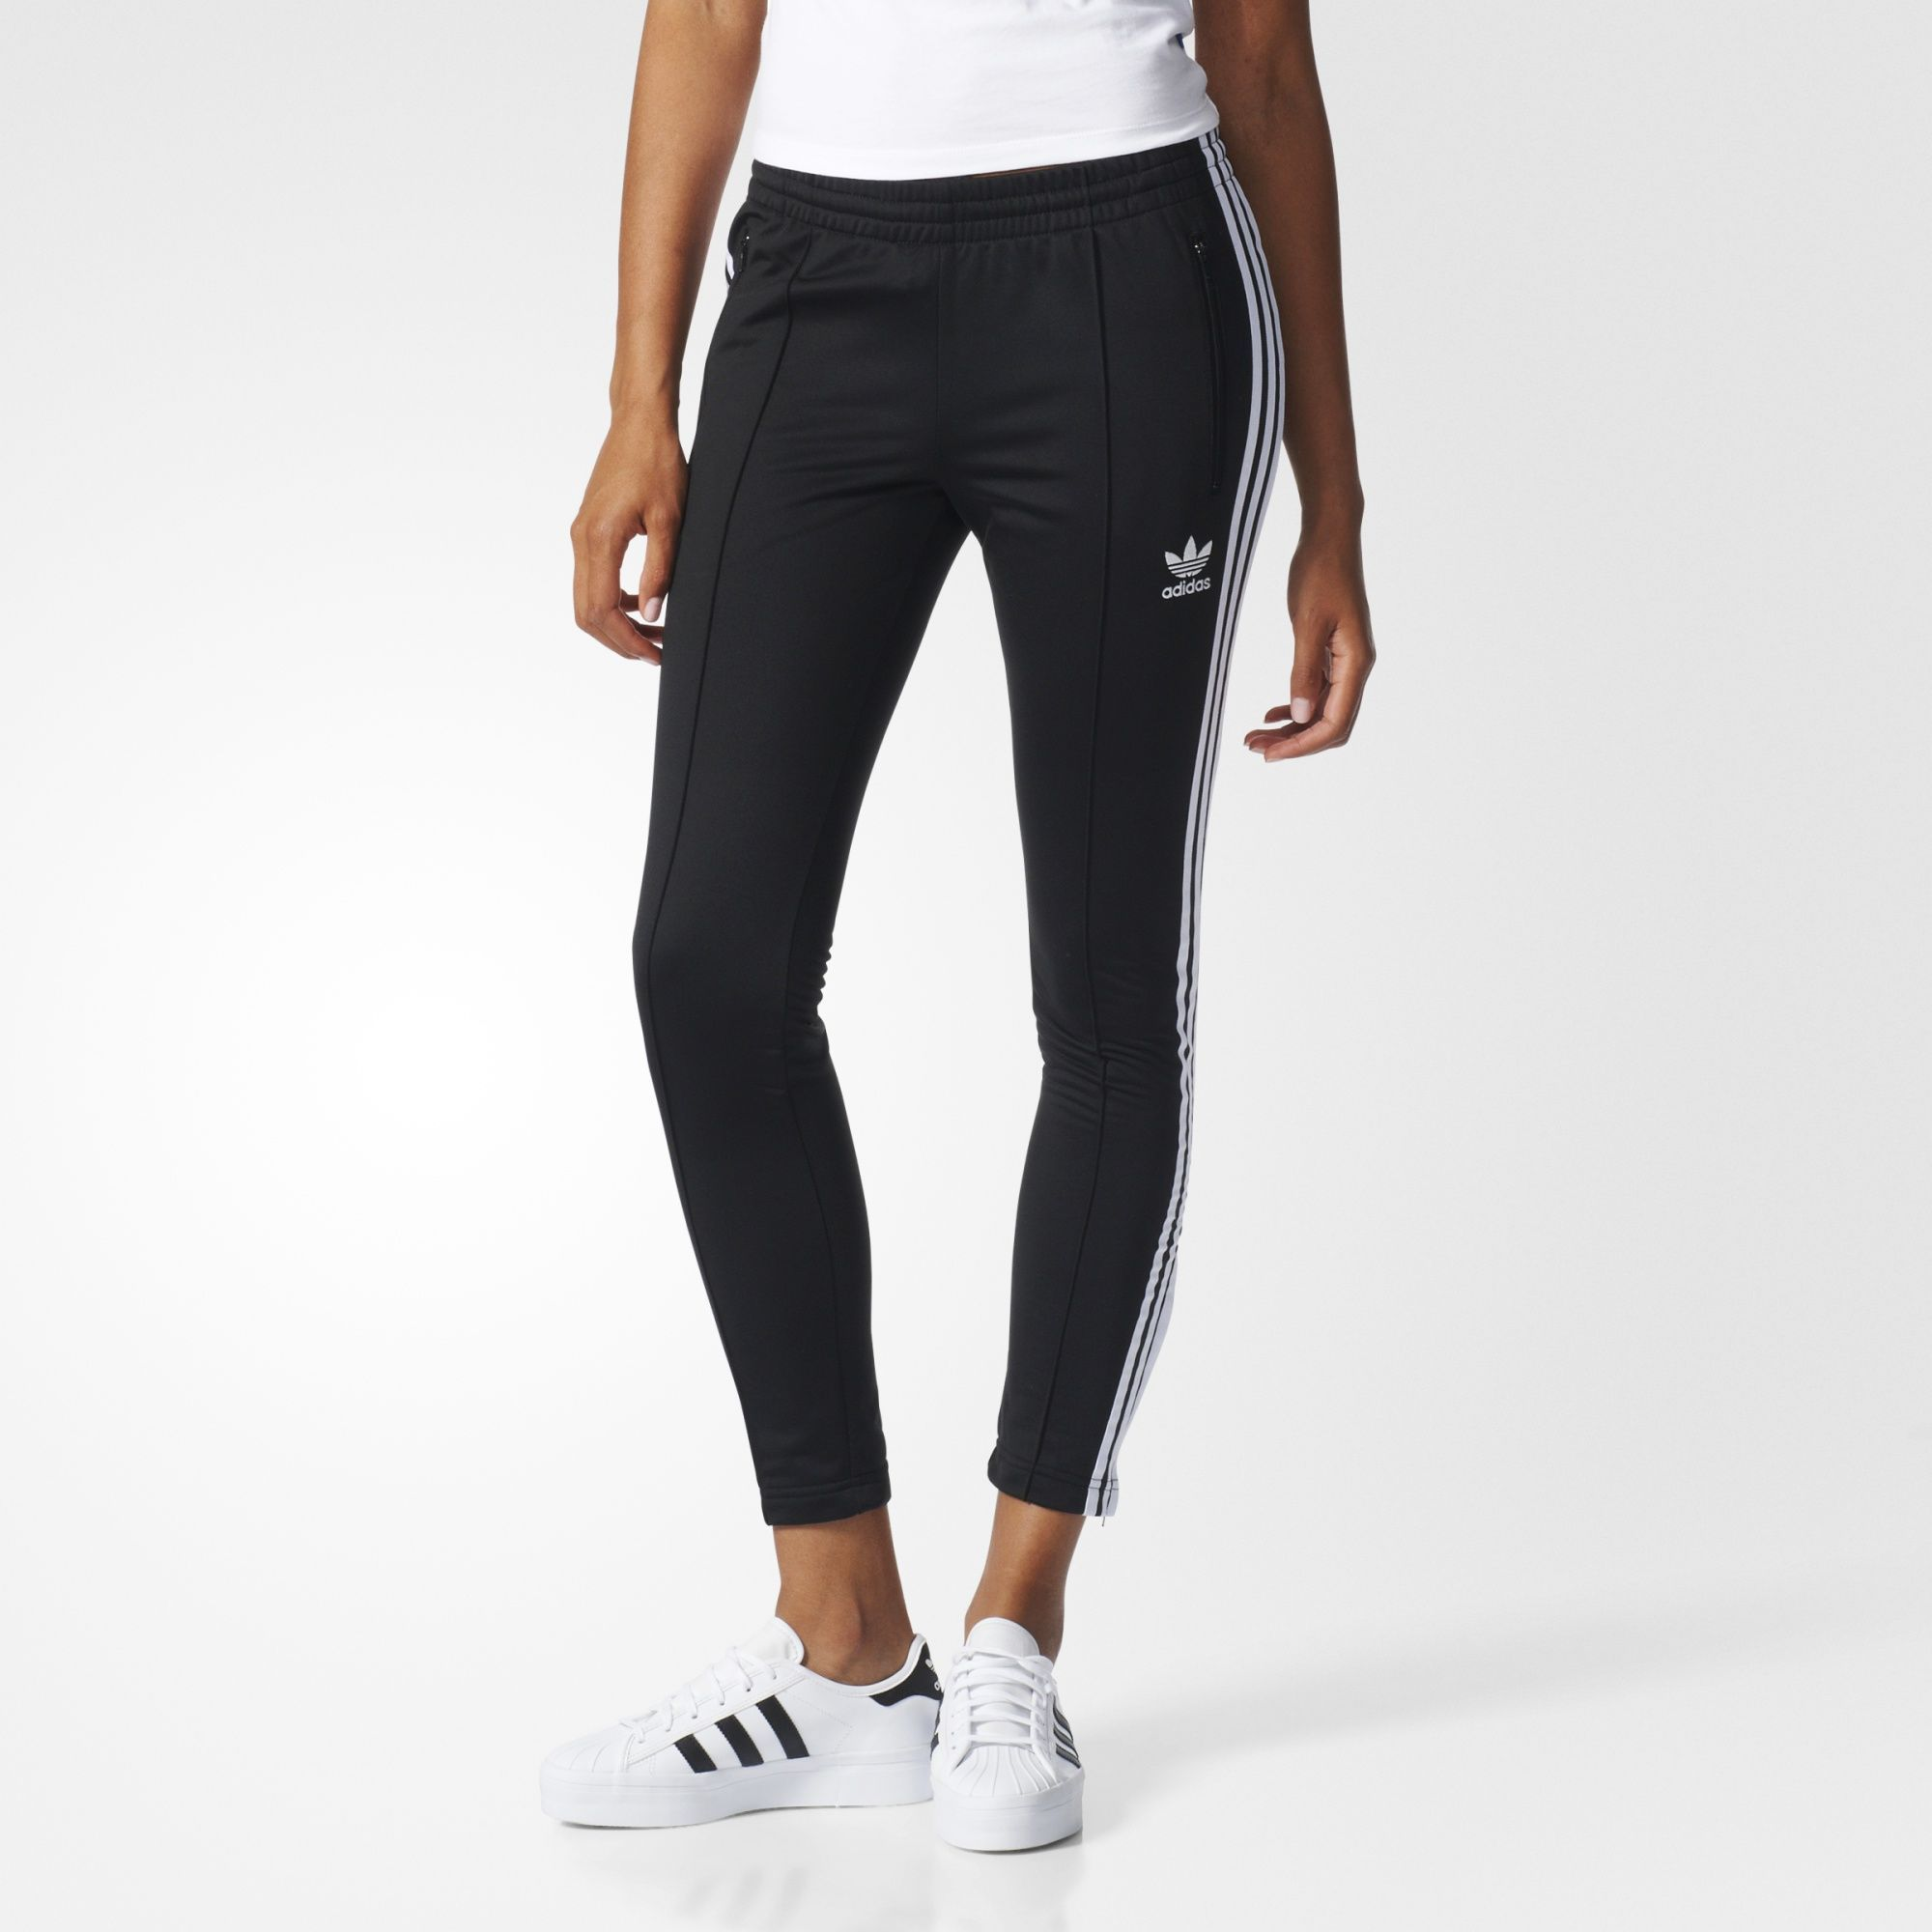 adidas women superstar track pants